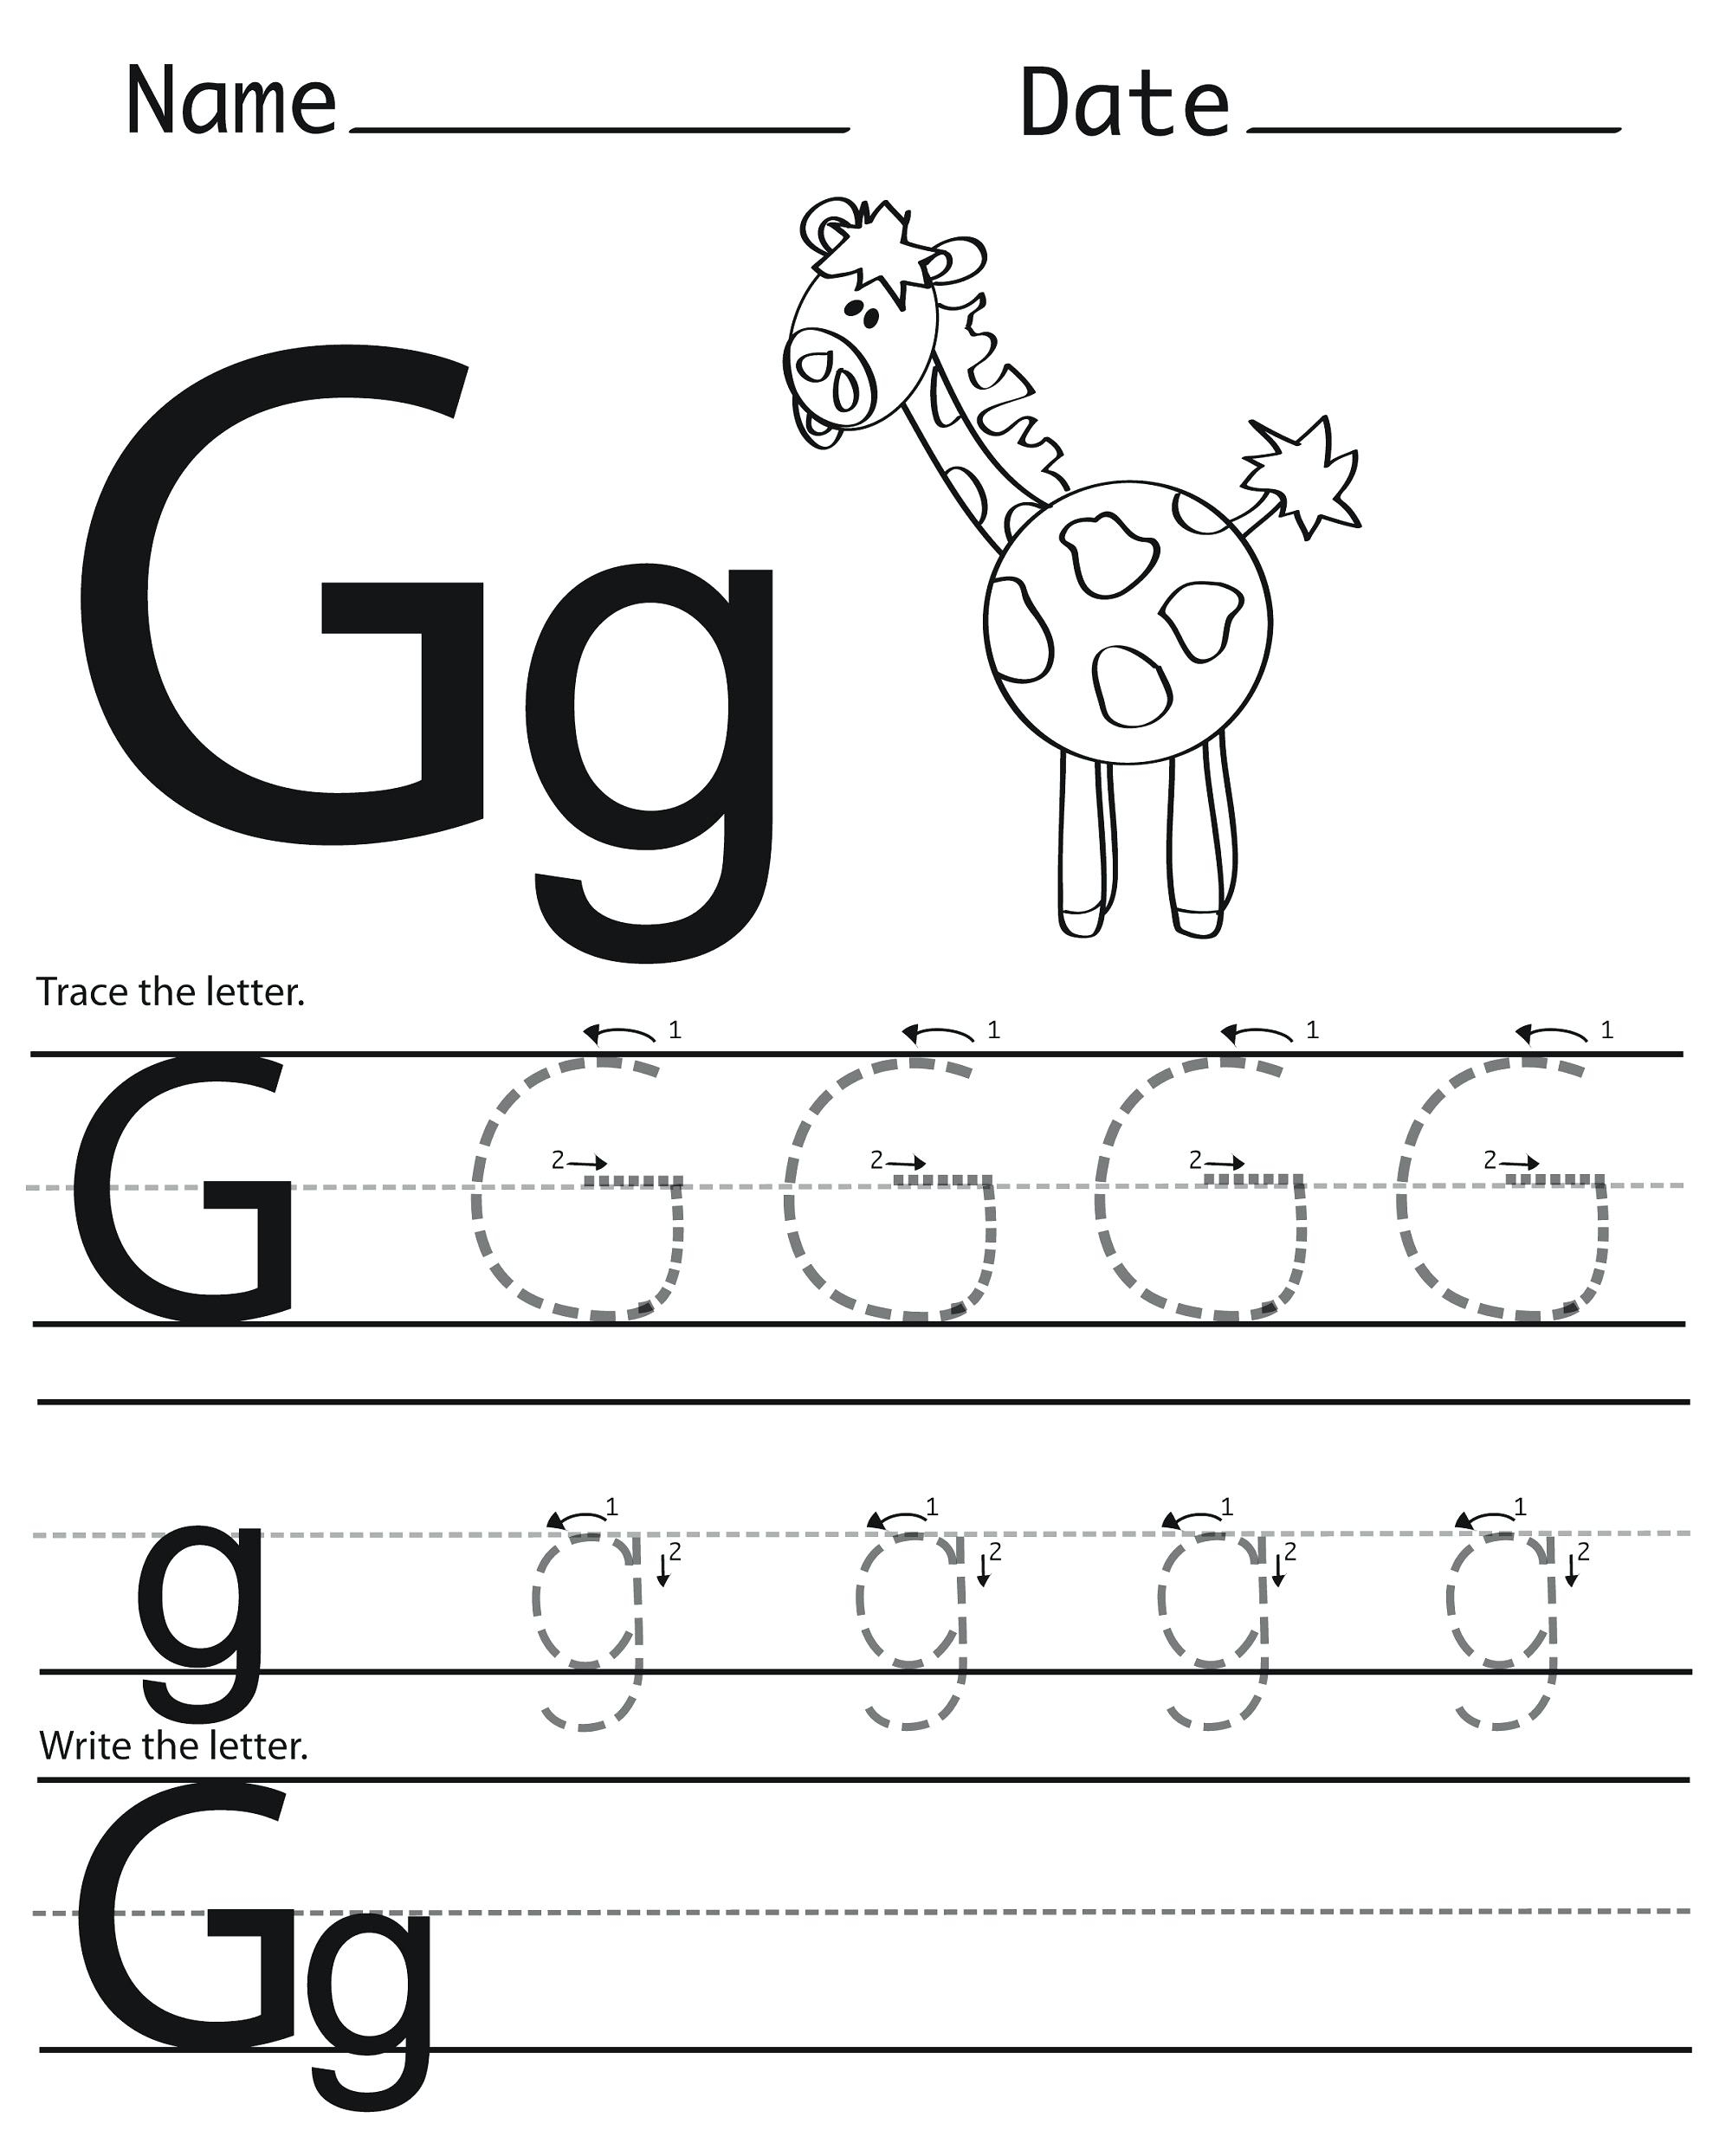 Trace Letter G Trace Letter G Activity Trace Small Letter C for Alphabet G Tracing Worksheets